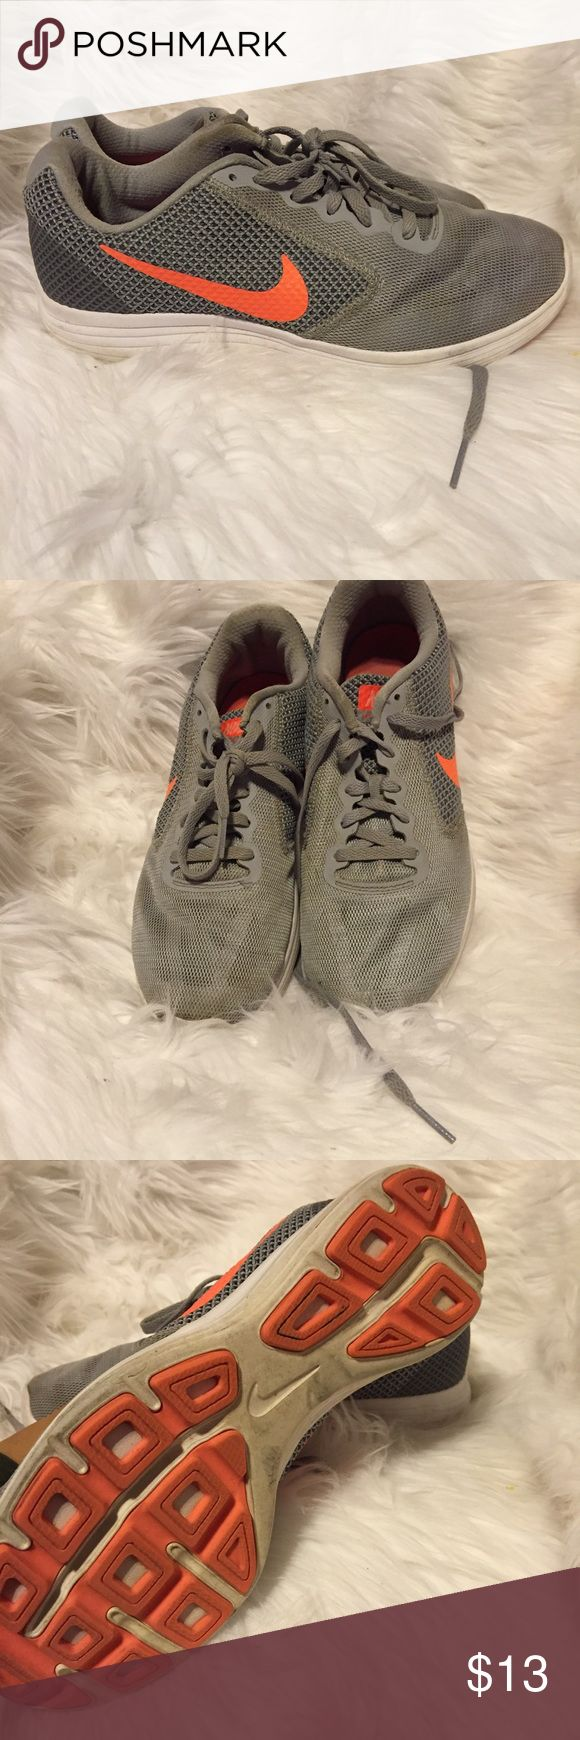 Nike tennis shoes women's 9 Ok condition. Need cleaning. Nike Shoes Sneakers